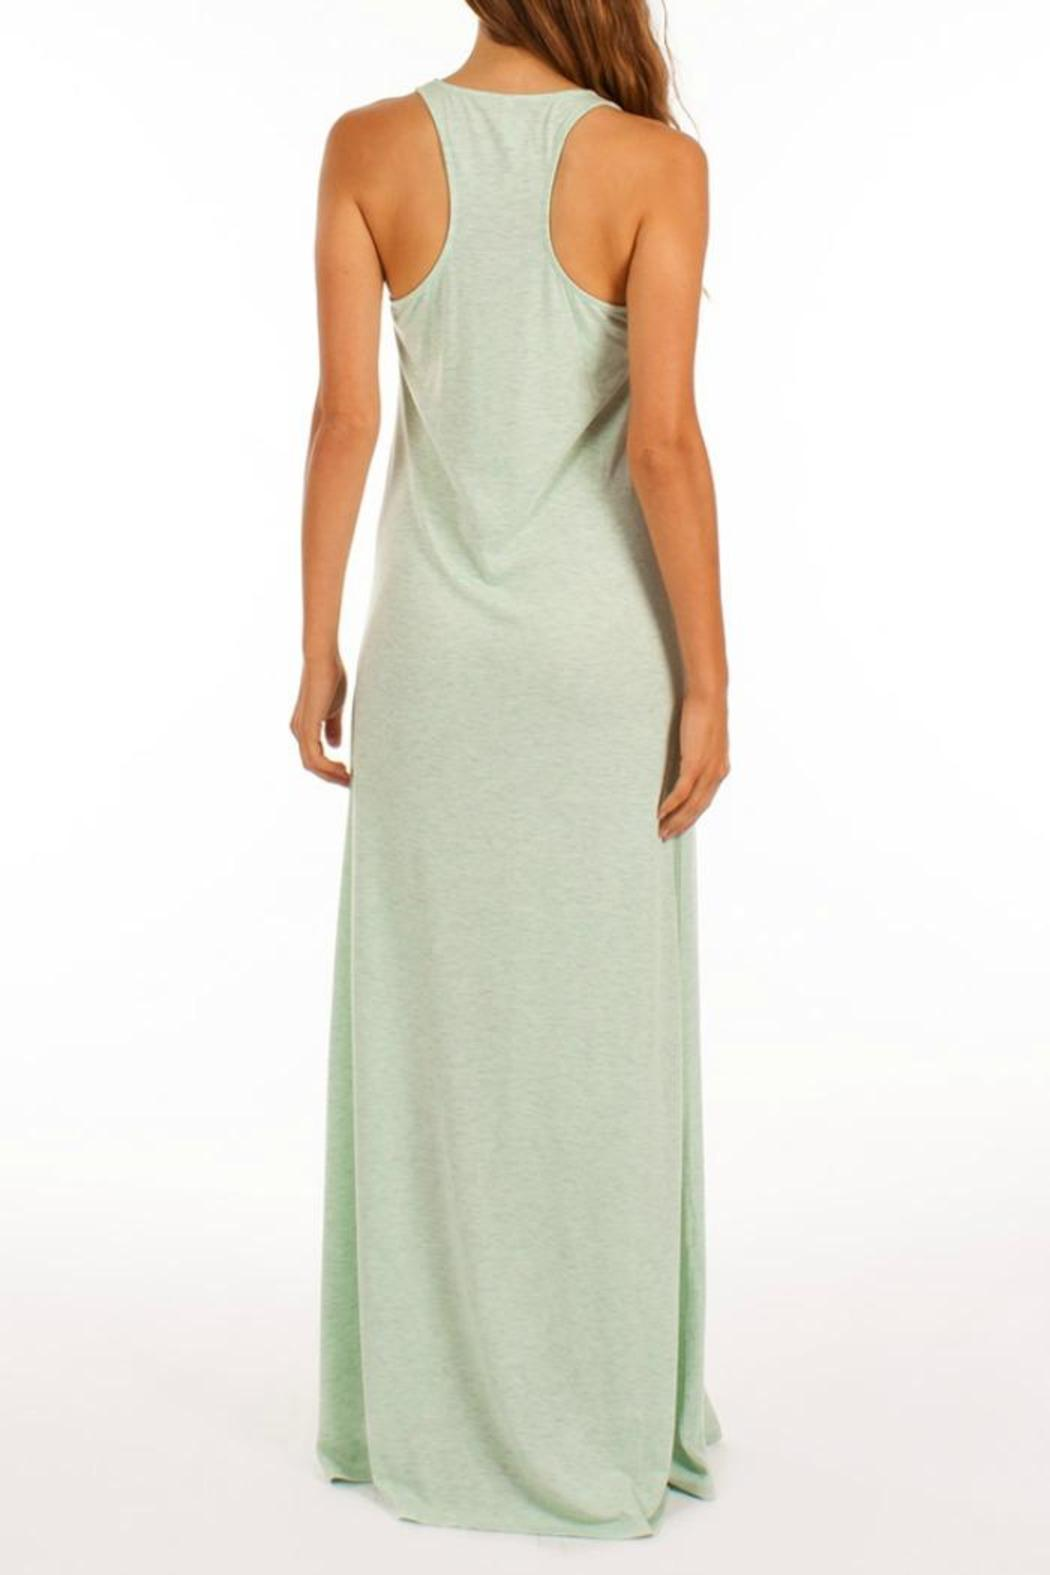 z supply Maxi Dress - Front Full Image